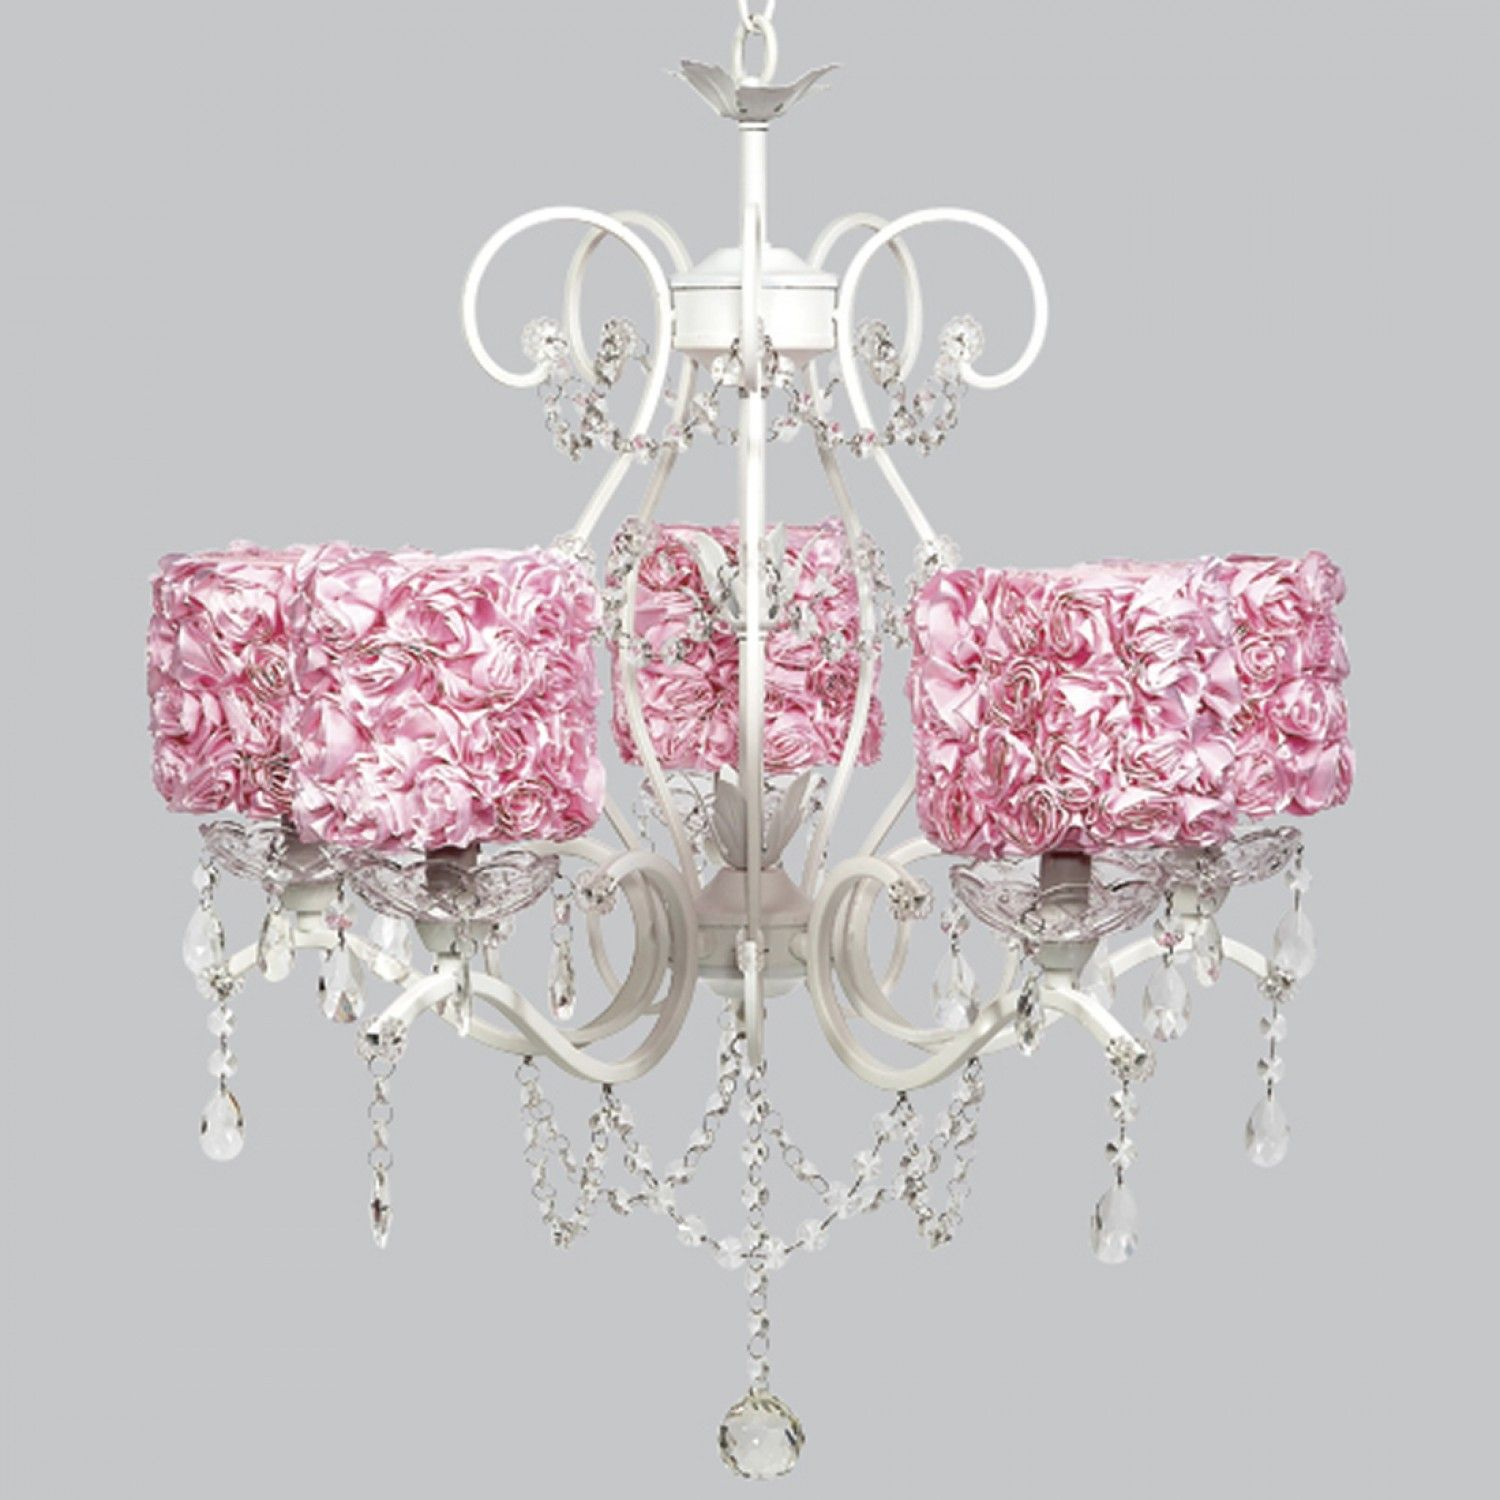 Painting of chandelier light covers ideas furniture pinterest buy your white 5 light grace chandelier with pink rose garden drum shades by jubilee collection here the white 5 light grace chandelier with pink rose aloadofball Images